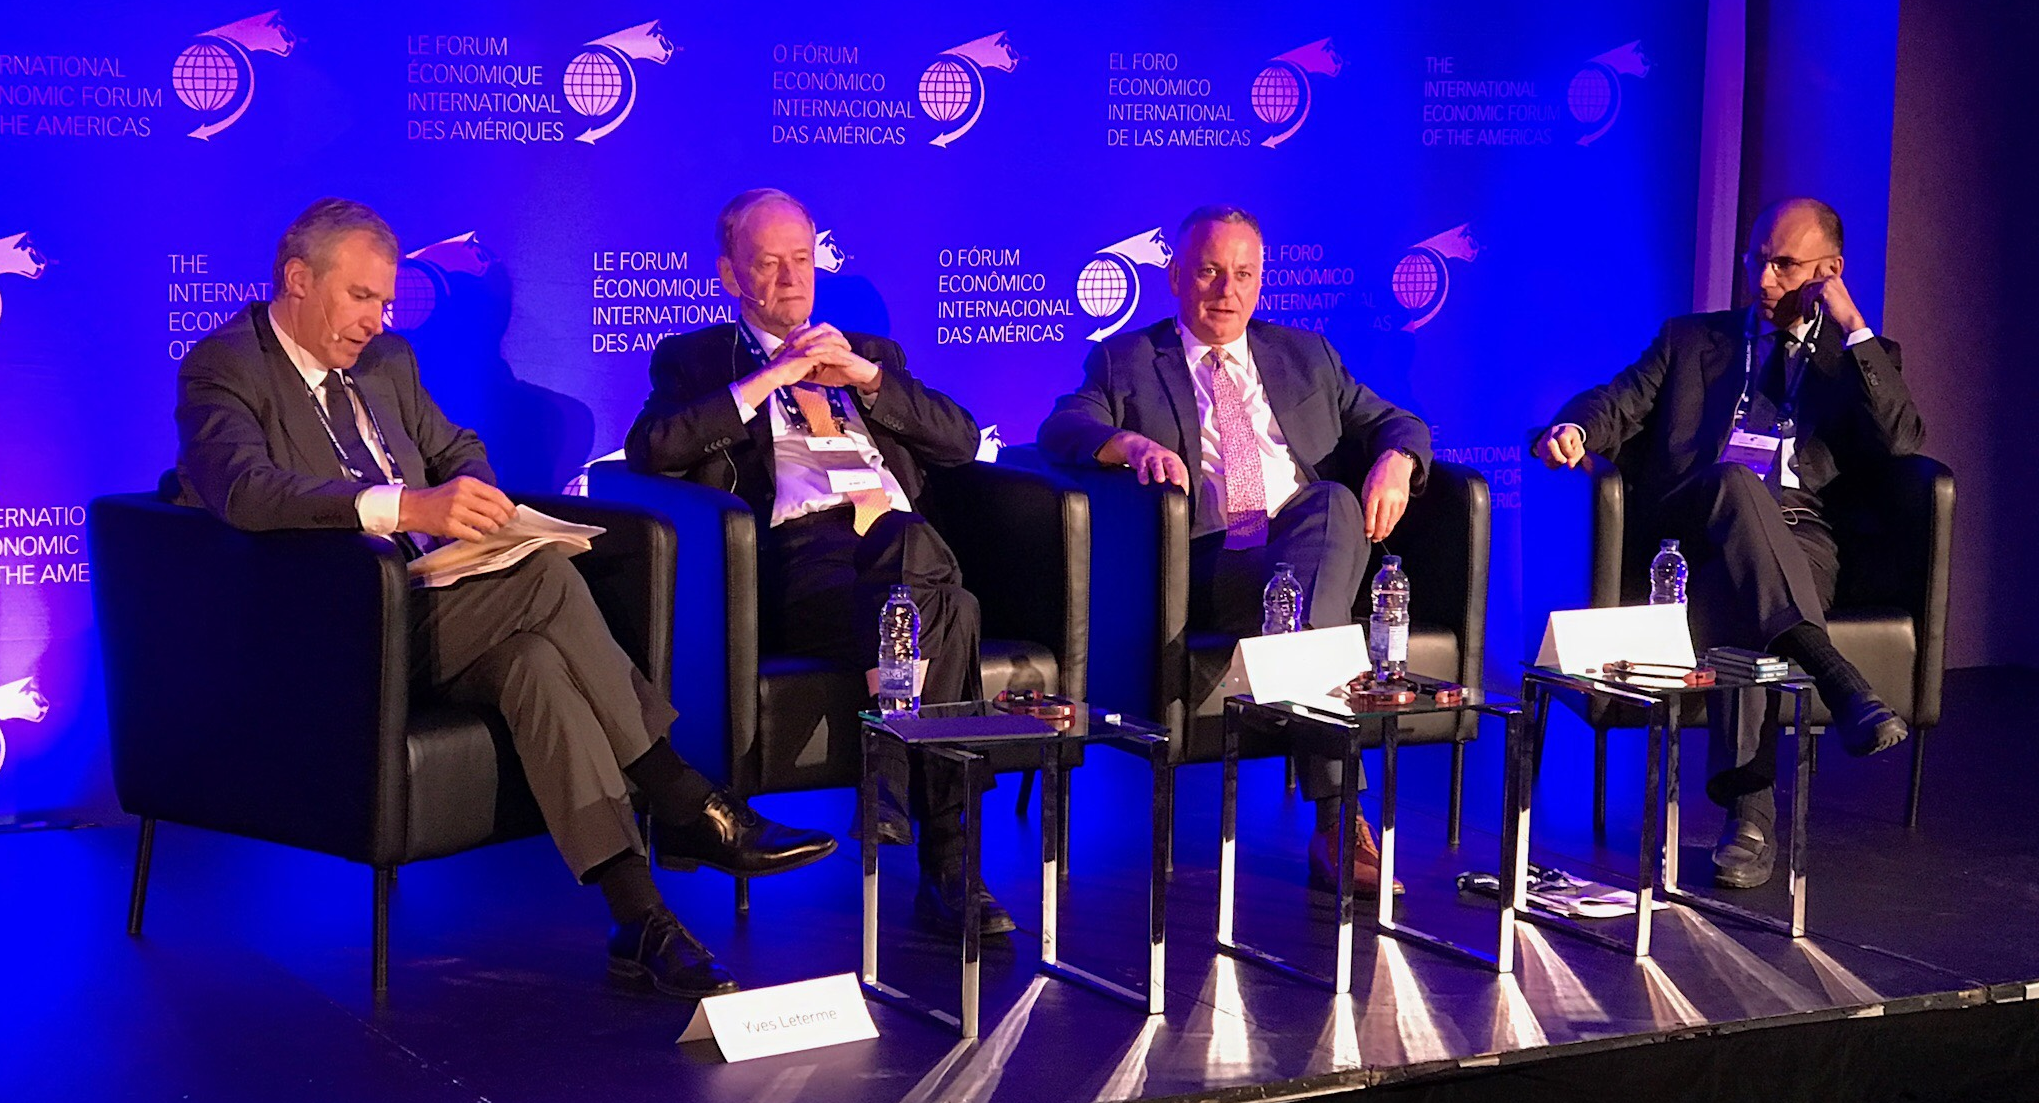 Panel moderated by Yves Leterme, with former Prime Minister of Canada Jean Chretien, former First Minister of Scotland, Lord Jack McConnell and former Prime Minister of Italy, Enrico Letta.